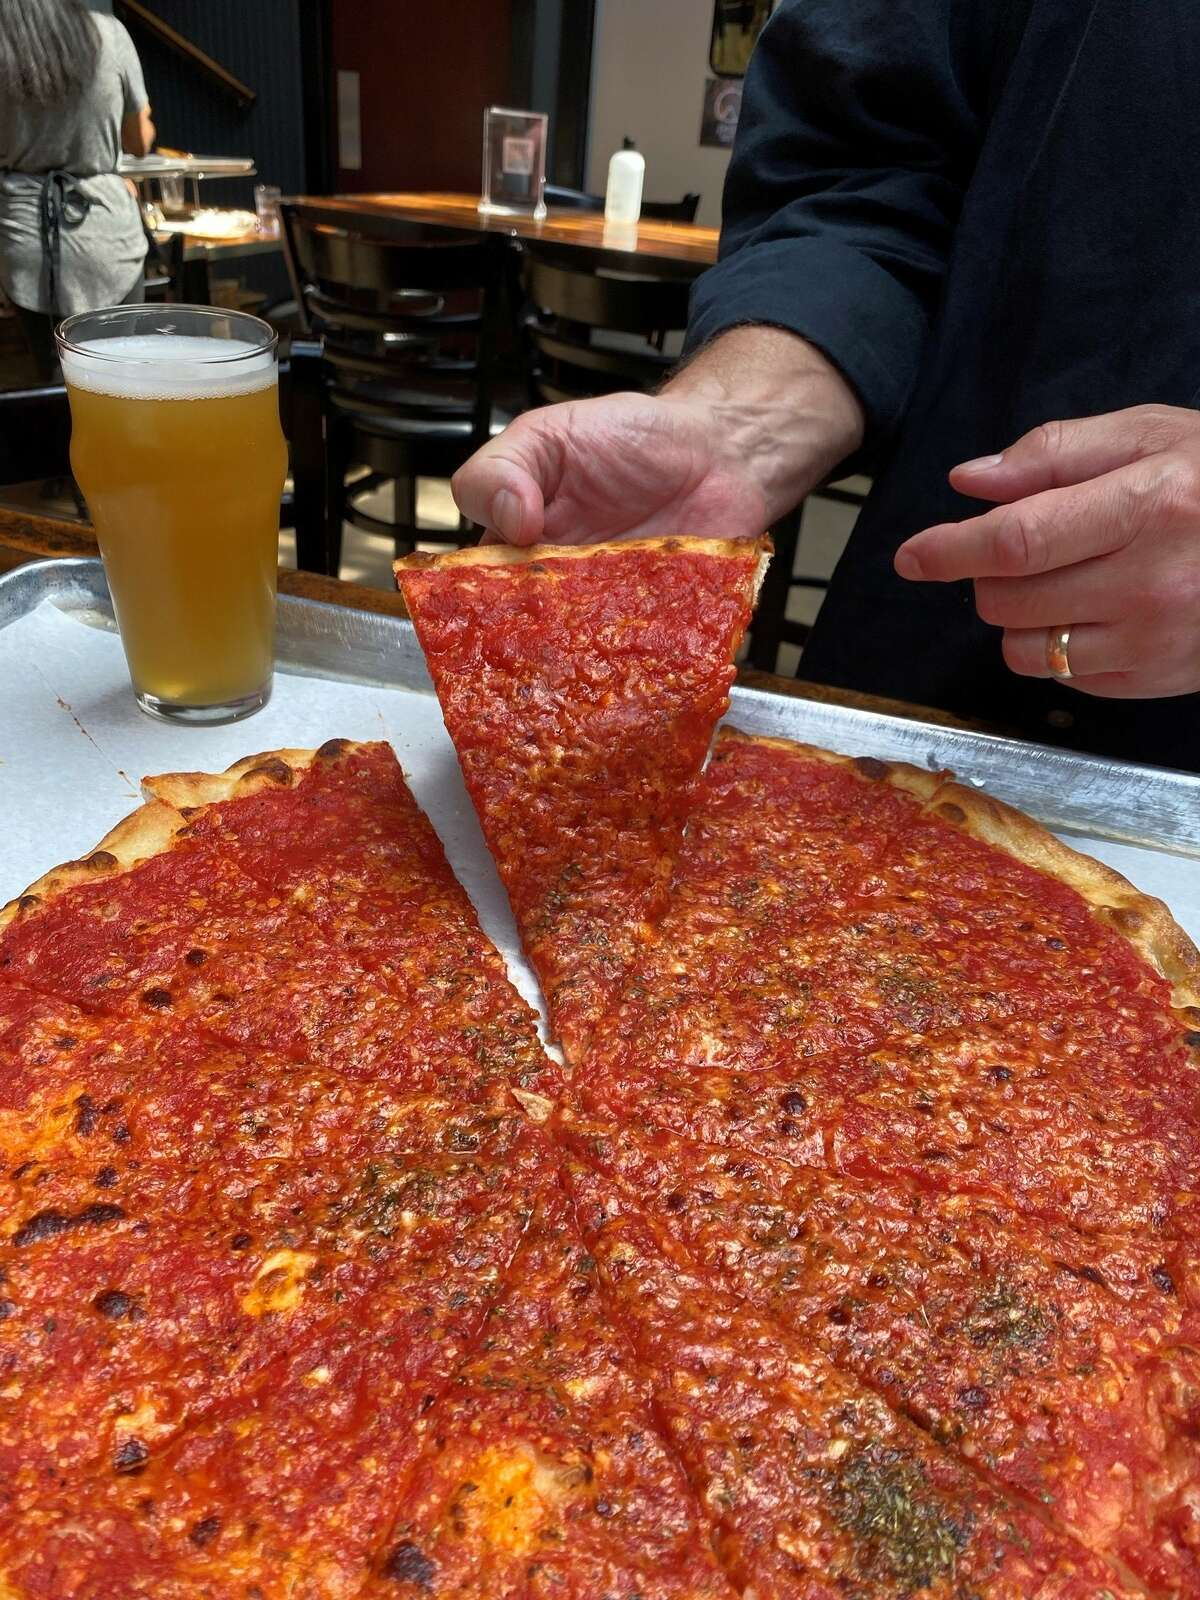 Piece Pizza in Chicago opened in 2001 and makes New Haven-style apizza.